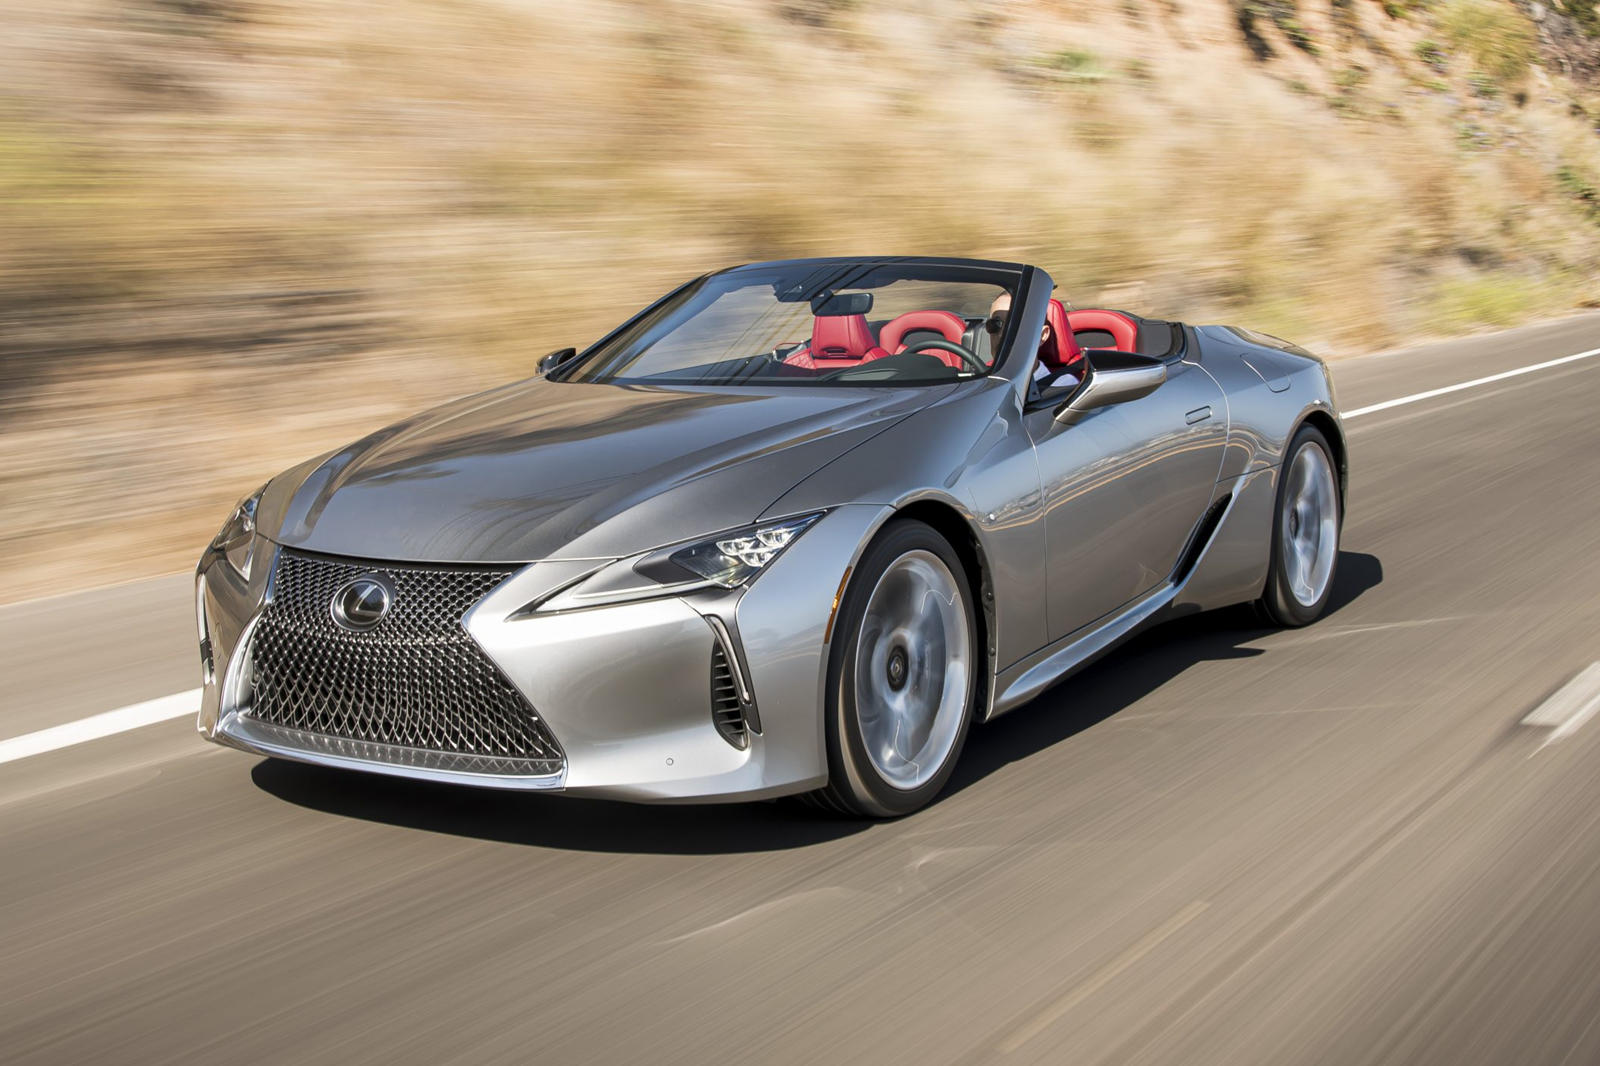 Can T Afford A Lexus Lc Convertible Here Are 6 Cheaper Used Alternatives Carbuzz